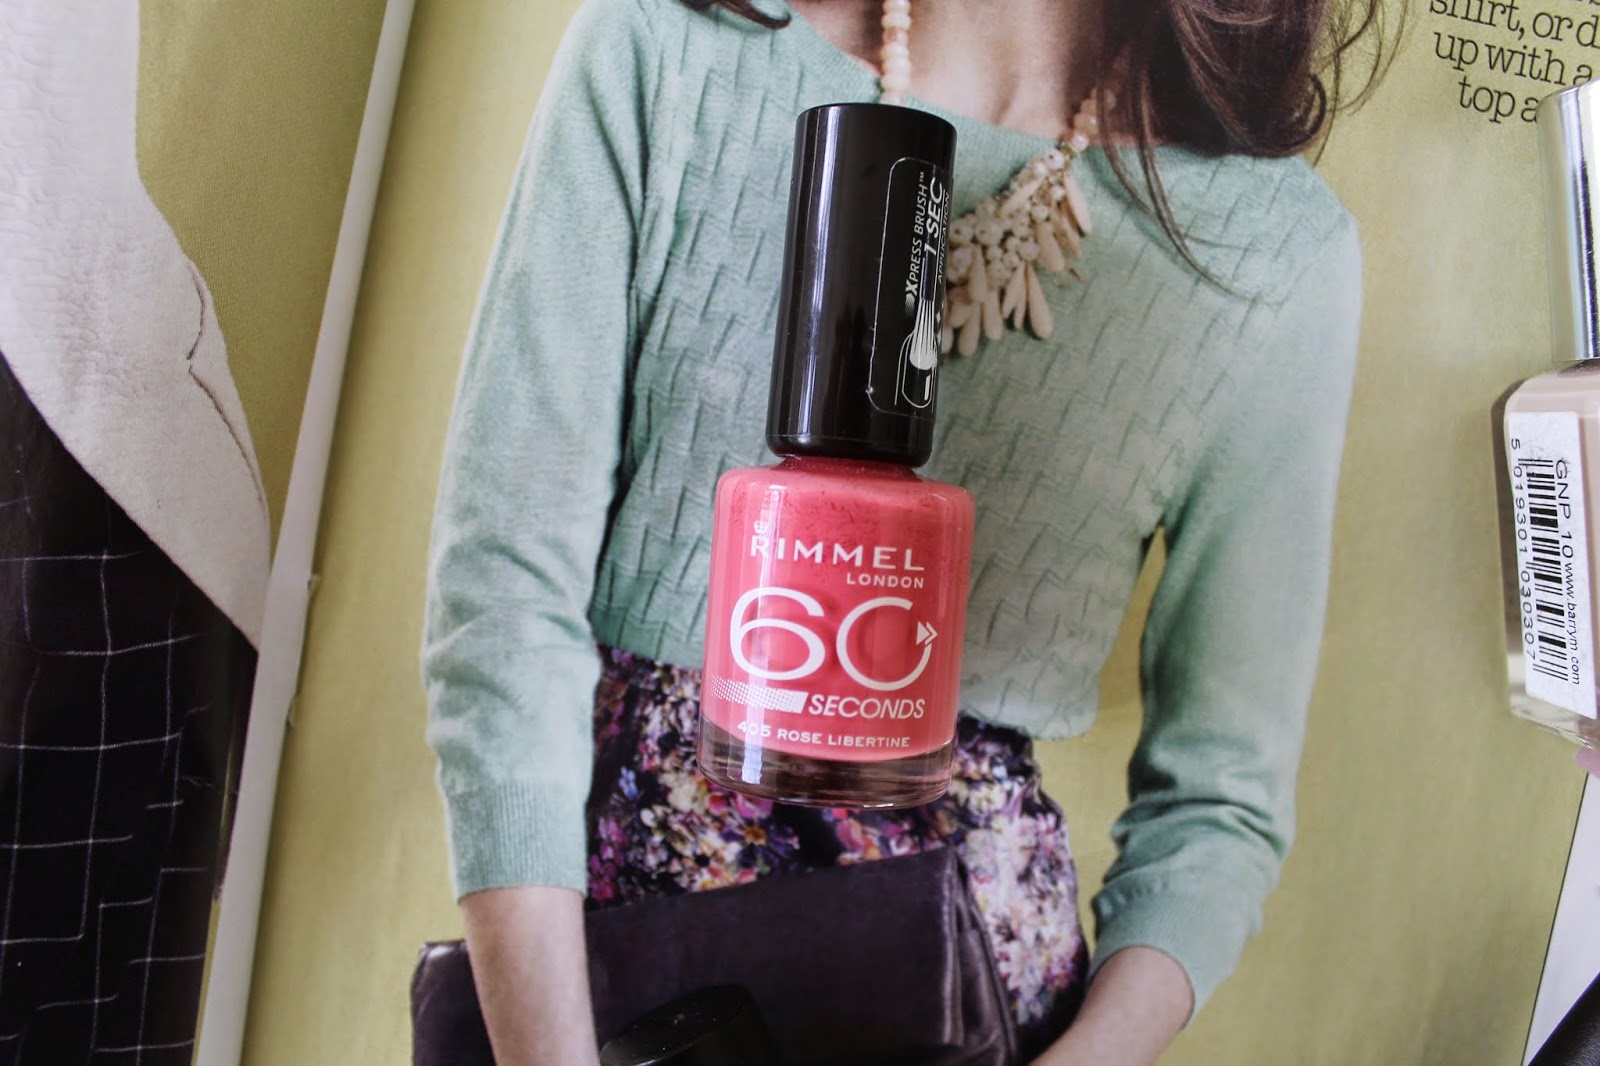 Rimmel London in Rose Libertine